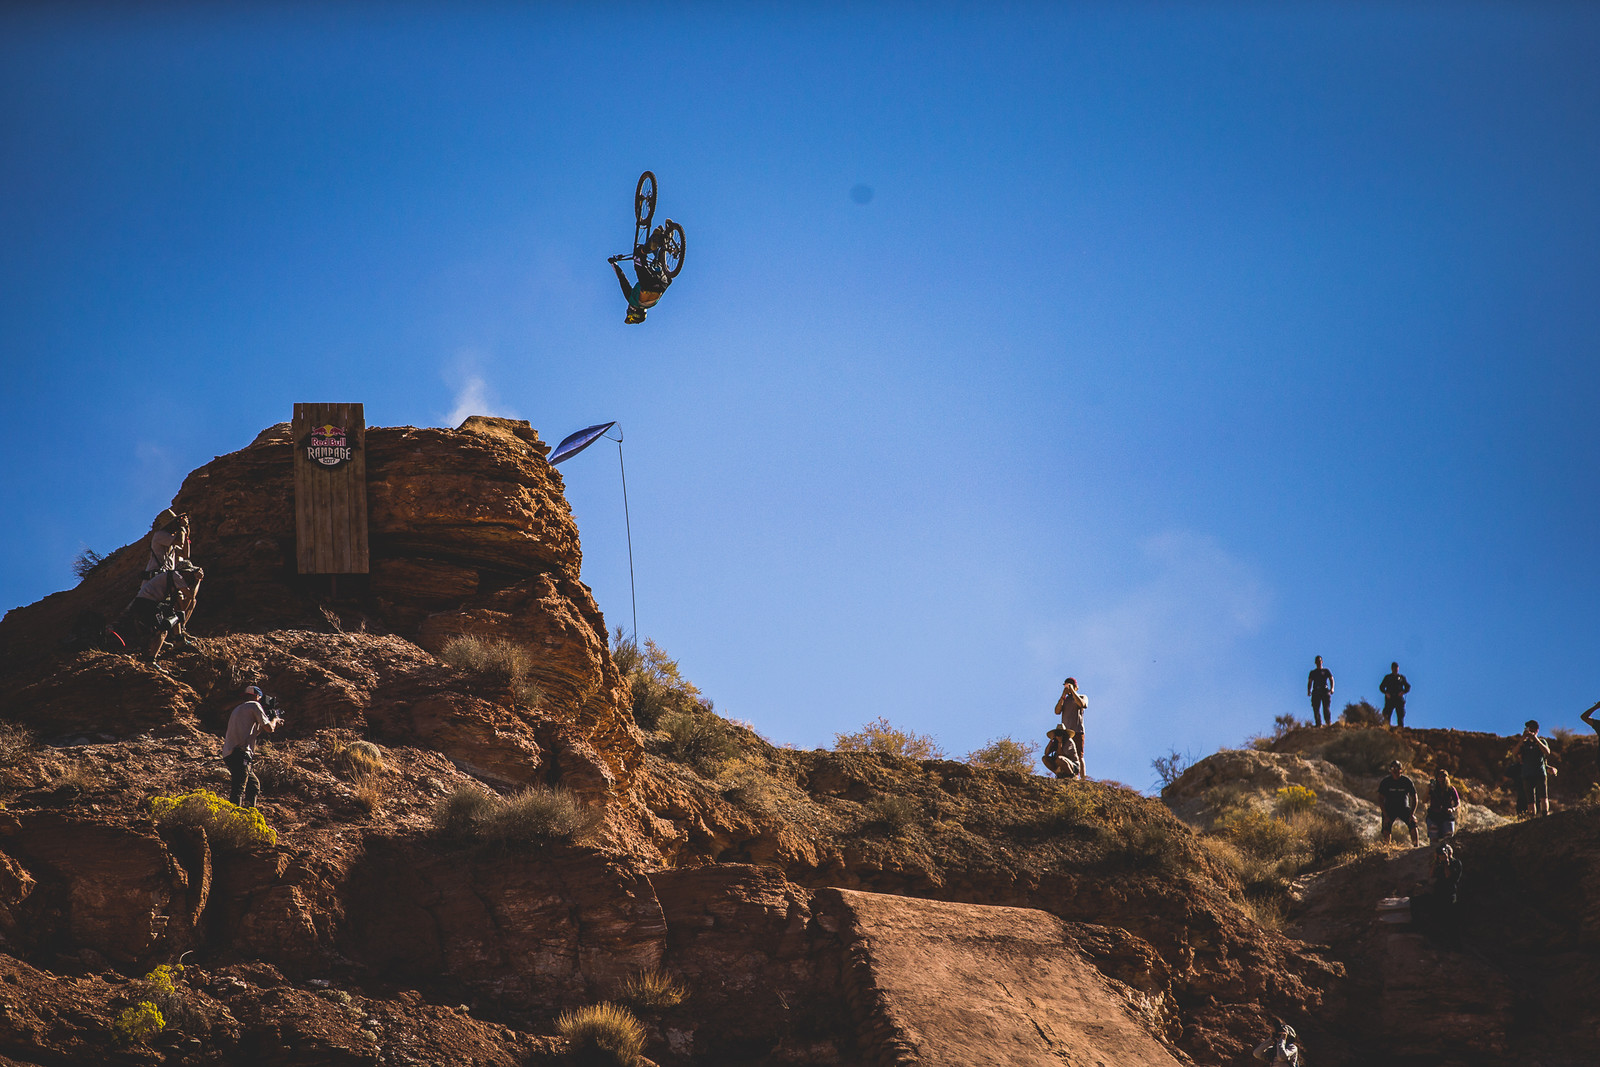 Kurt Sorge, Purely Mental - 2017 Rampage Photo Gnar! - @maddogboris' Rampage Finals Photos - Mountain Biking Pictures - Vital MTB